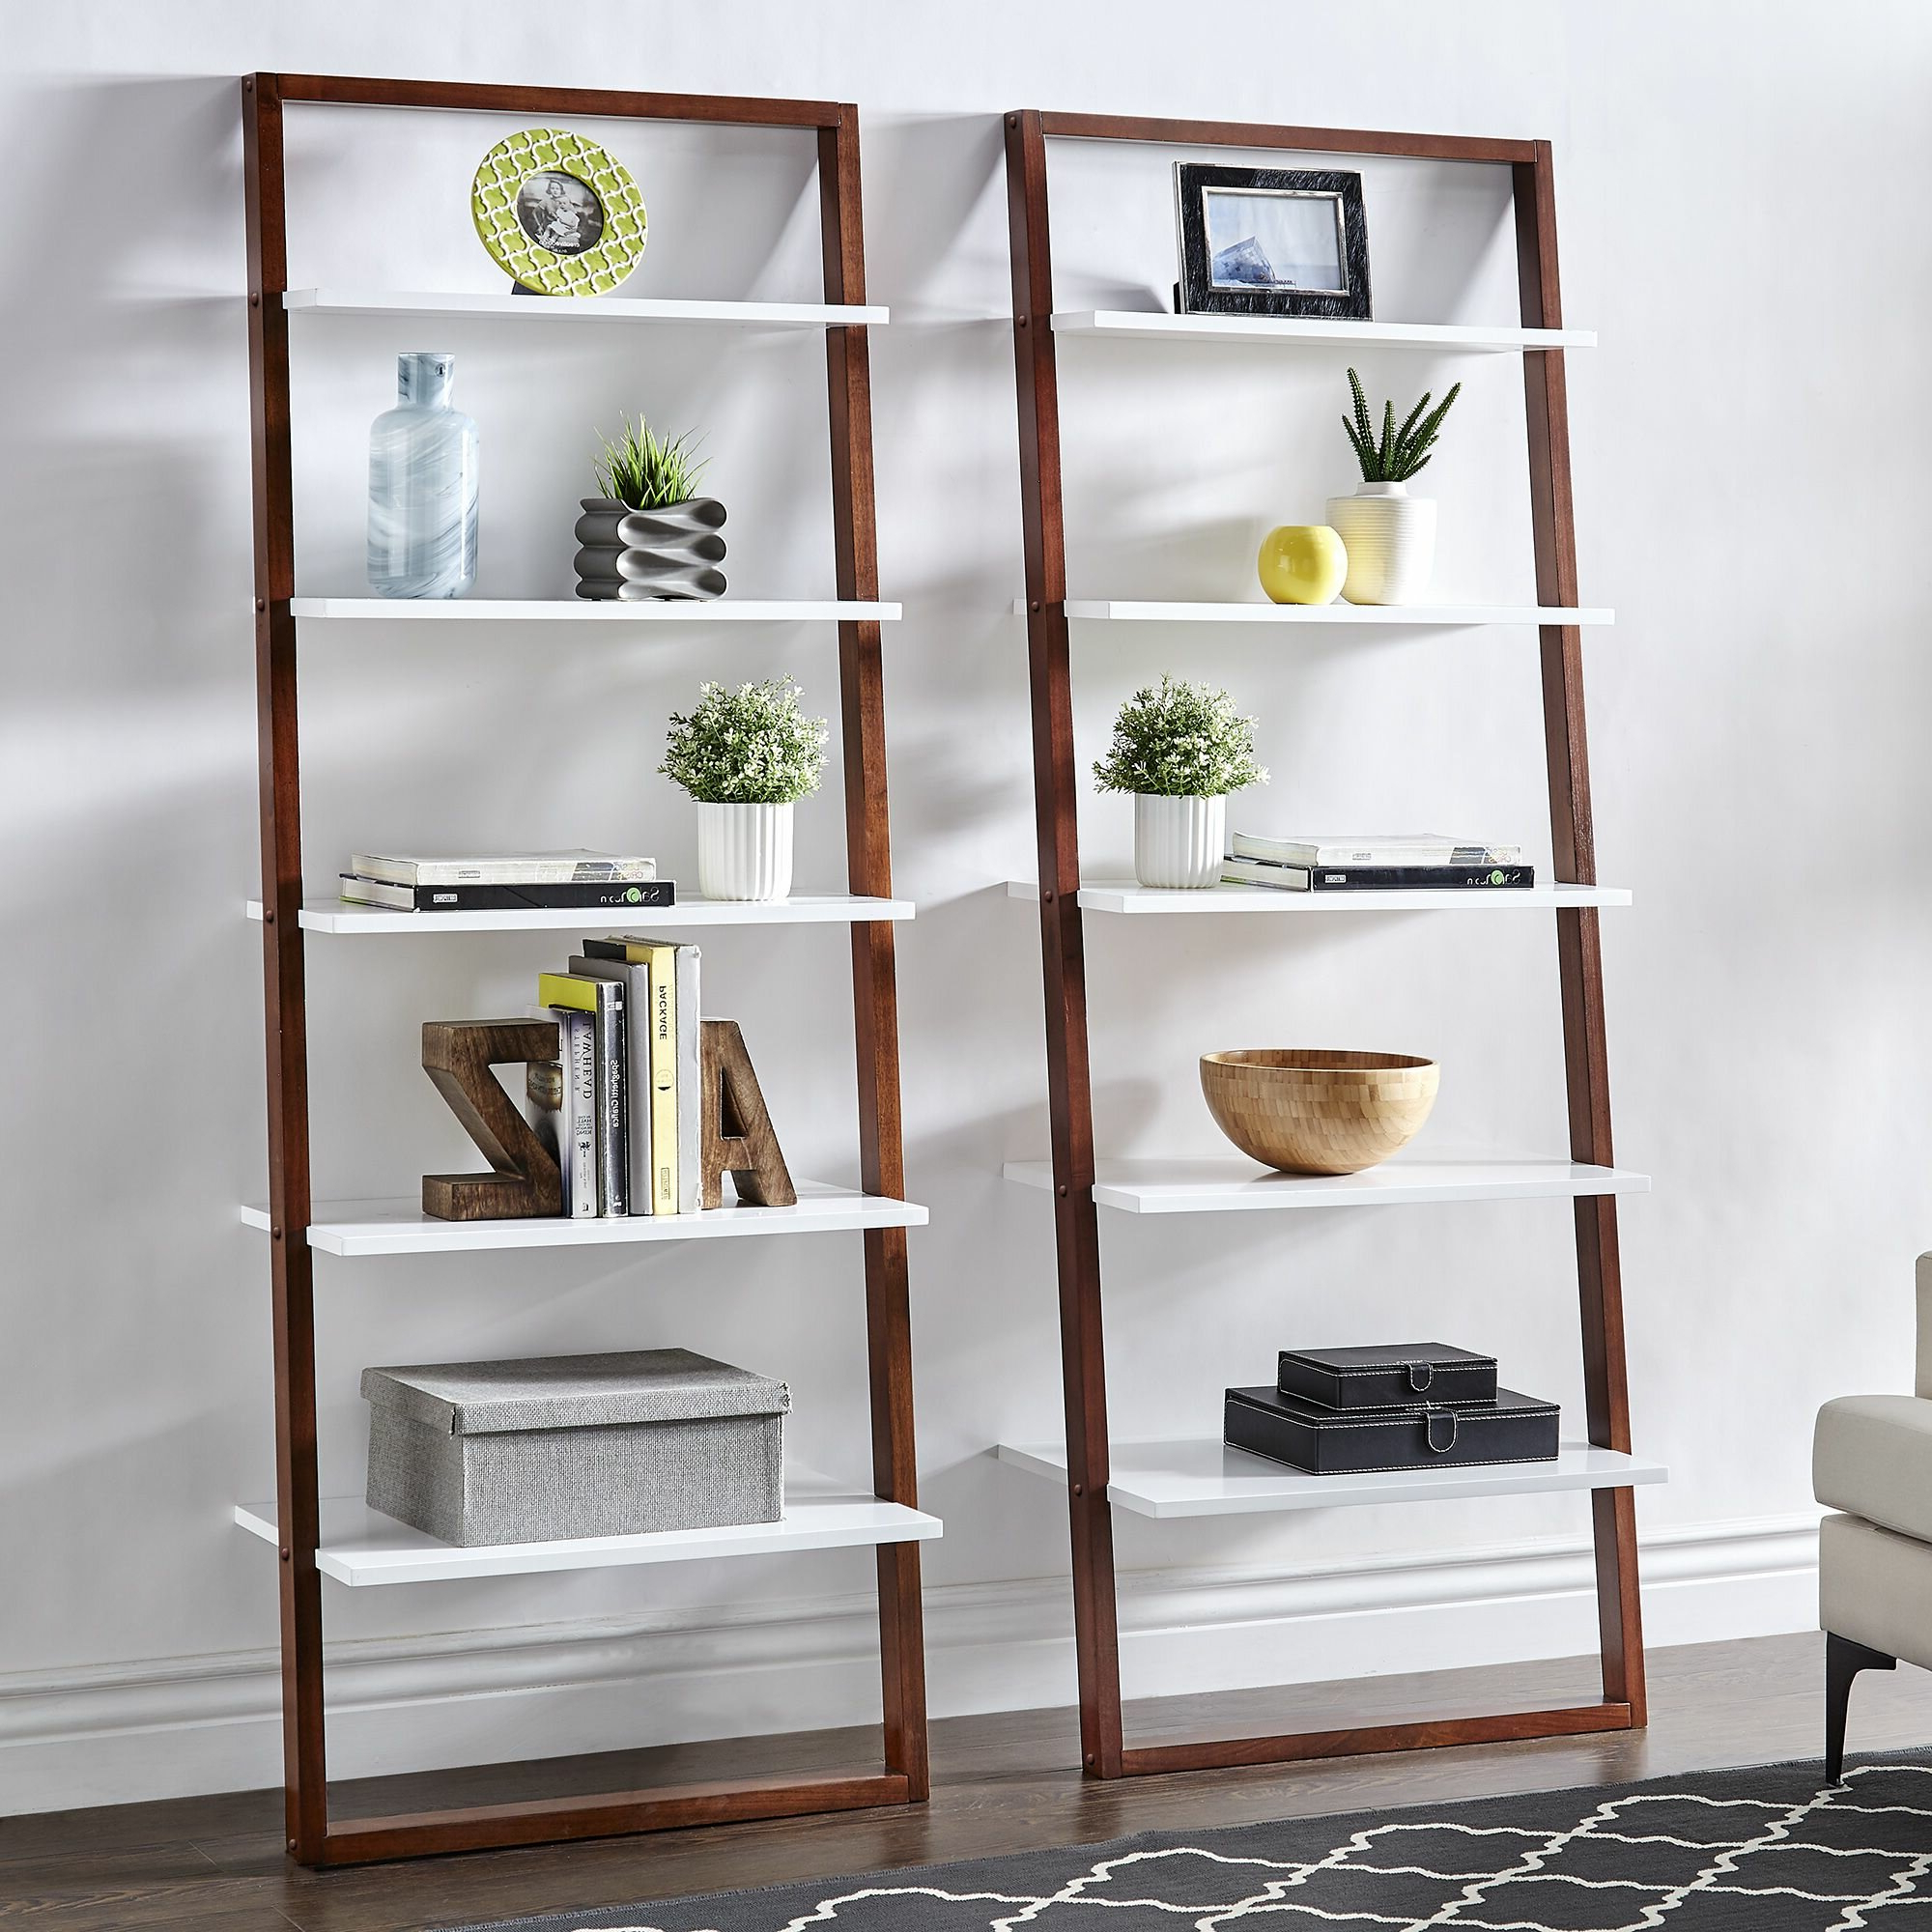 Widely Used Noelle Ashlynn Ladder Bookcases With Leaning Bookcases You'll Love In  (View 20 of 20)